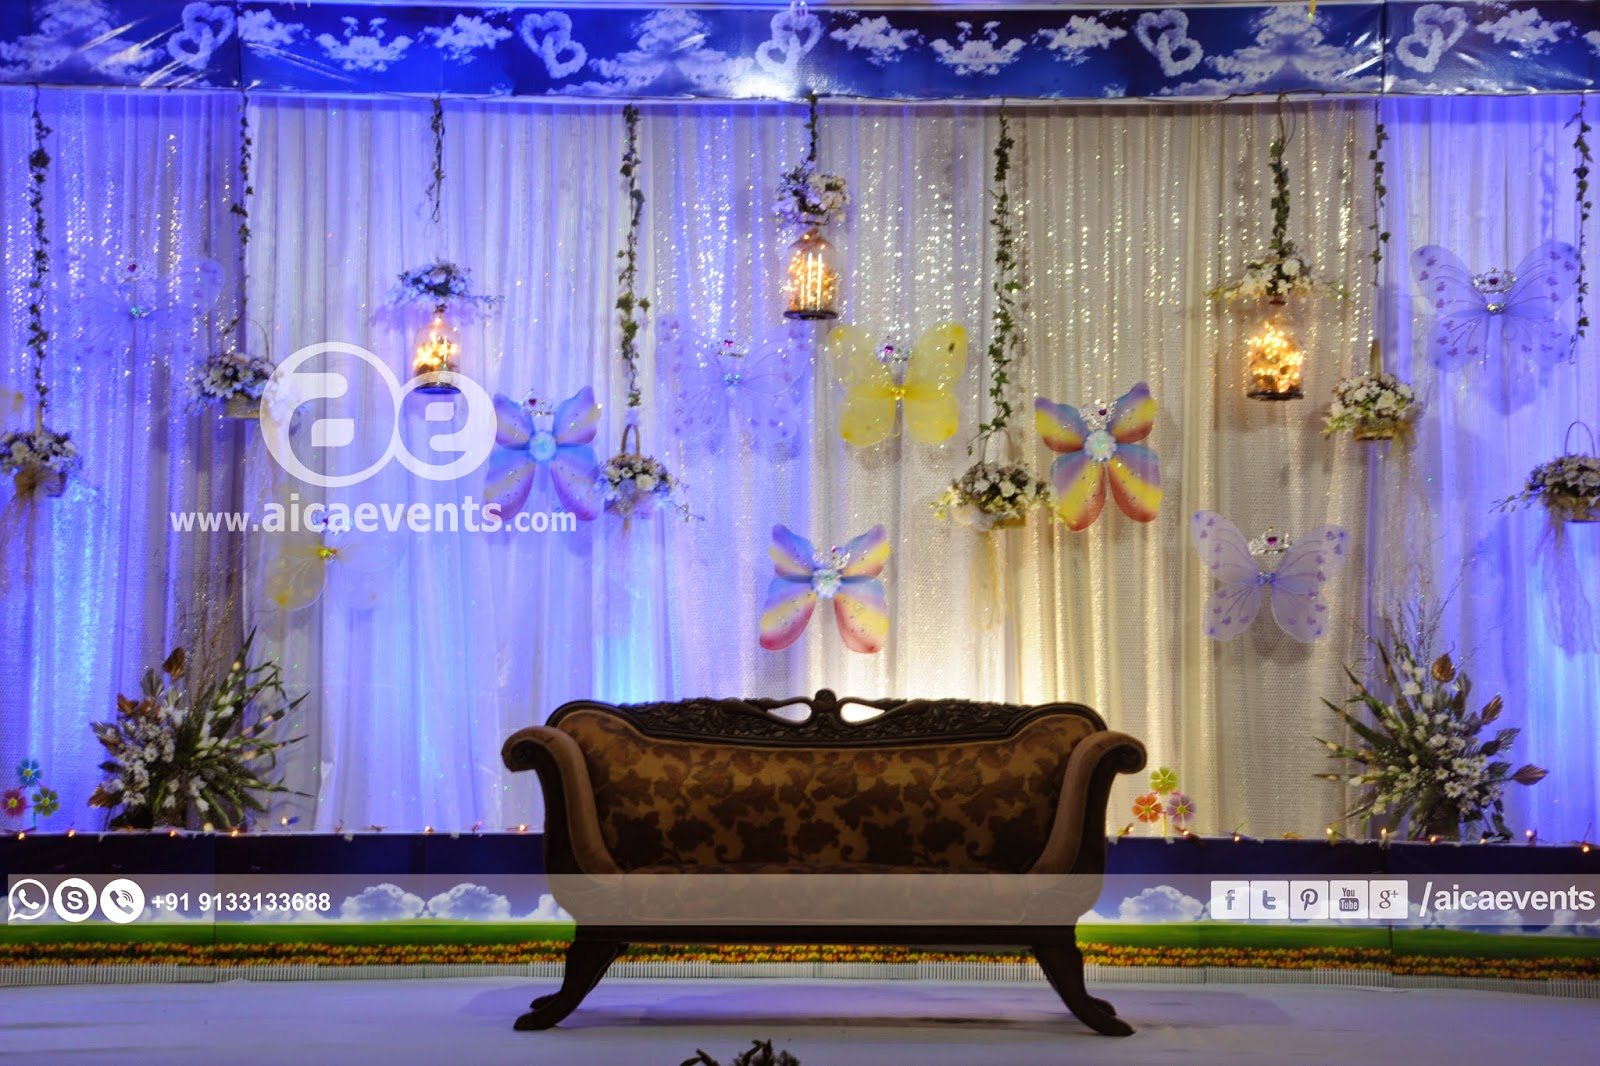 Aicaevents butterfly theme birthday party ideas for 1st birthday hall decoration ideas